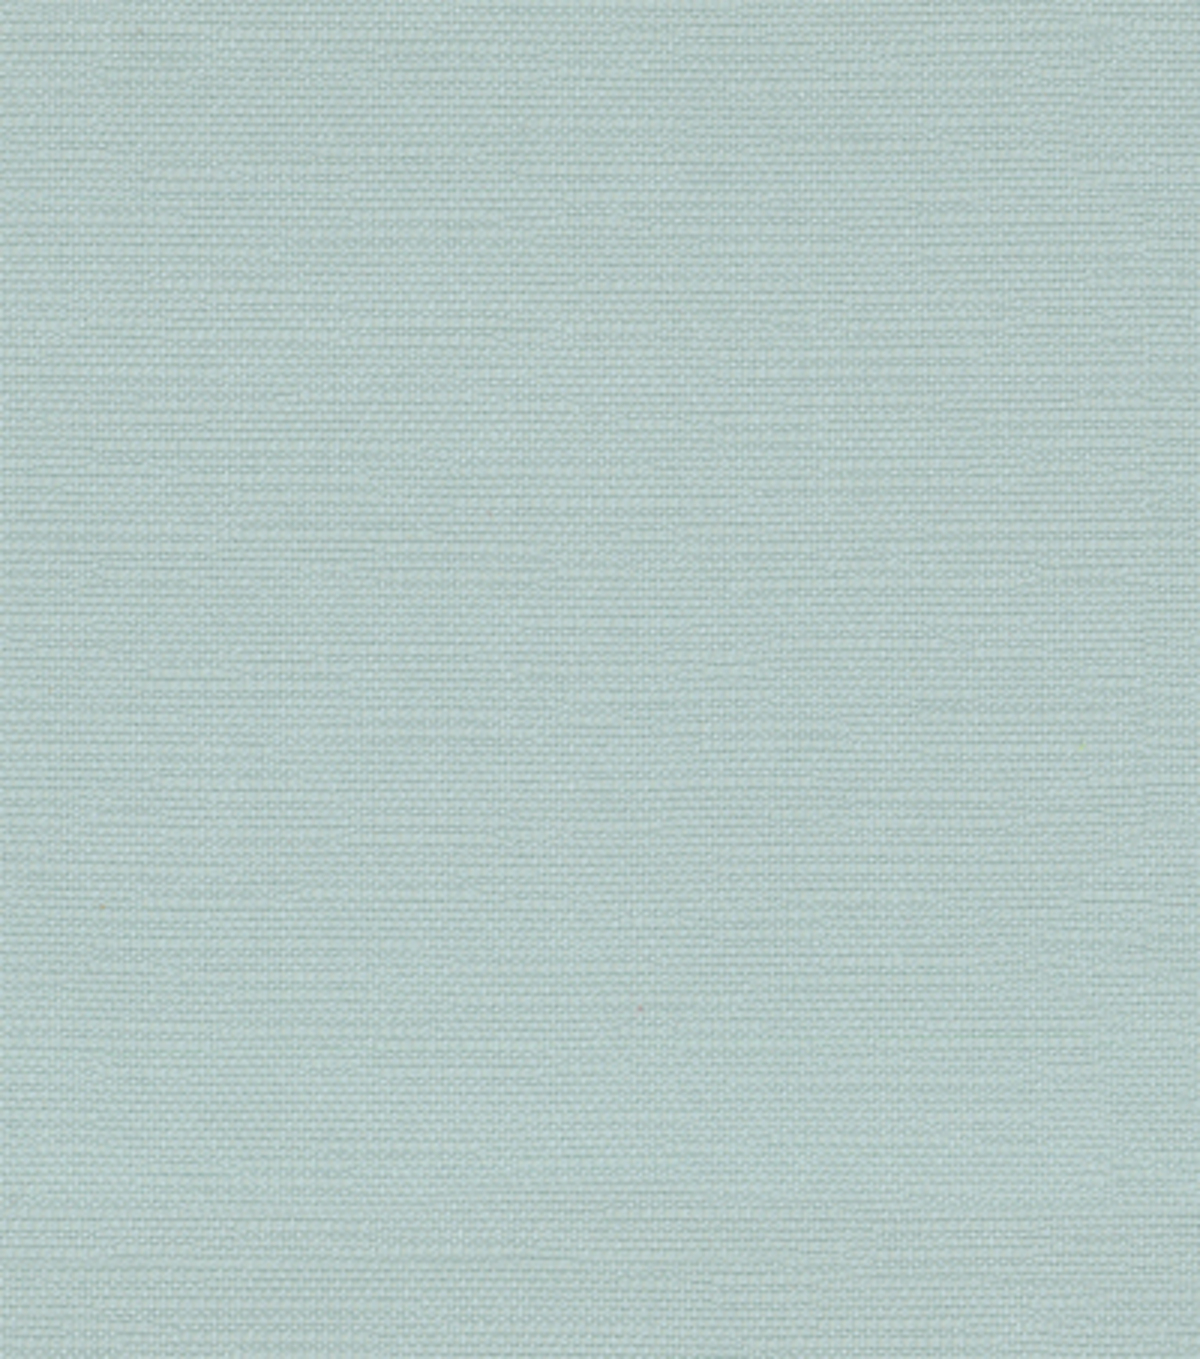 Home Decor 8\u0022x8\u0022 Fabric Swatch-Covington Westfield